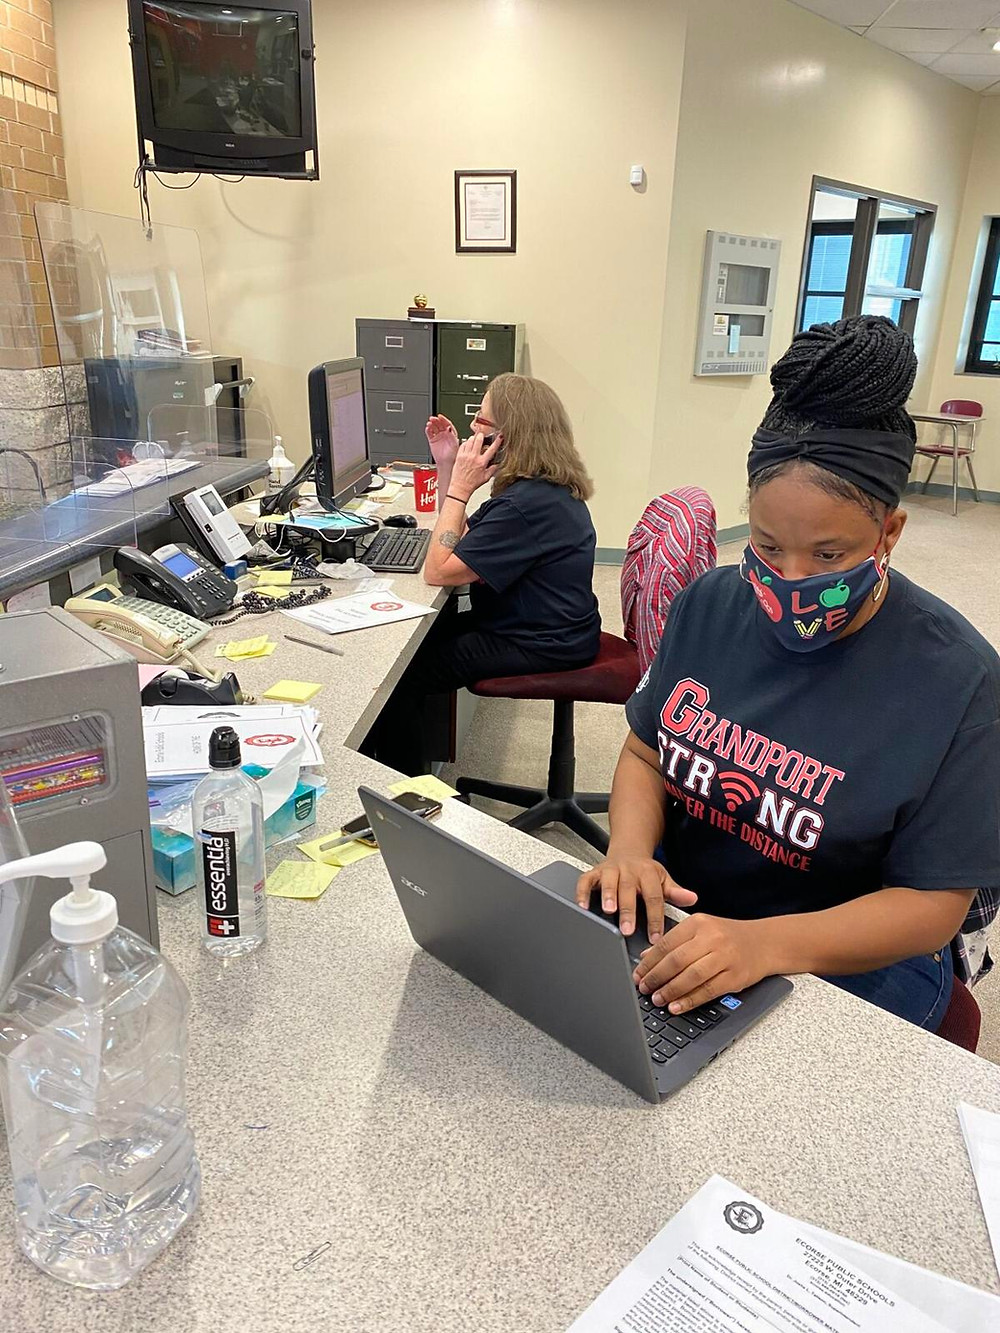 Toyre Burks, a teacher with Ecorse Public Schools, is aiding a student who is having difficulty logging on to Google Classroom. The district set up a hotline for parents and students. Photo courtesy of Ecorse Public Schools